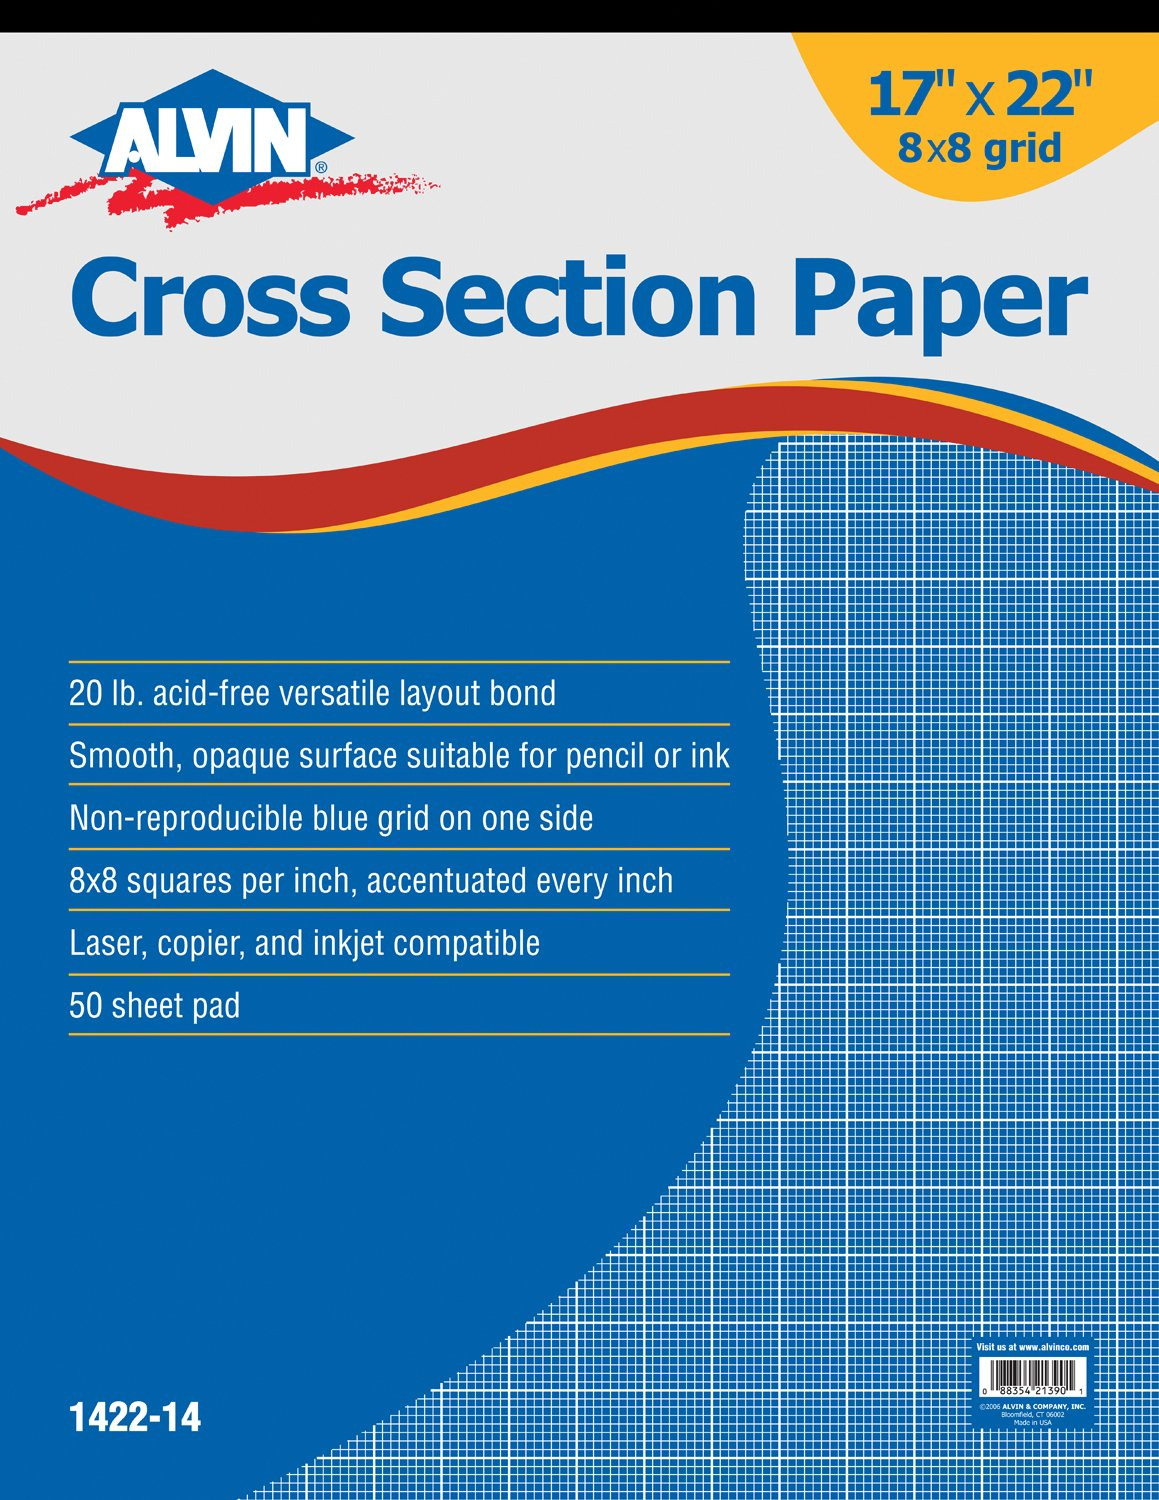 Alvin 1422-14 Cross Section Paper 8 x 8 Grid 50-Sheet Pad 17 inches x 22 inches